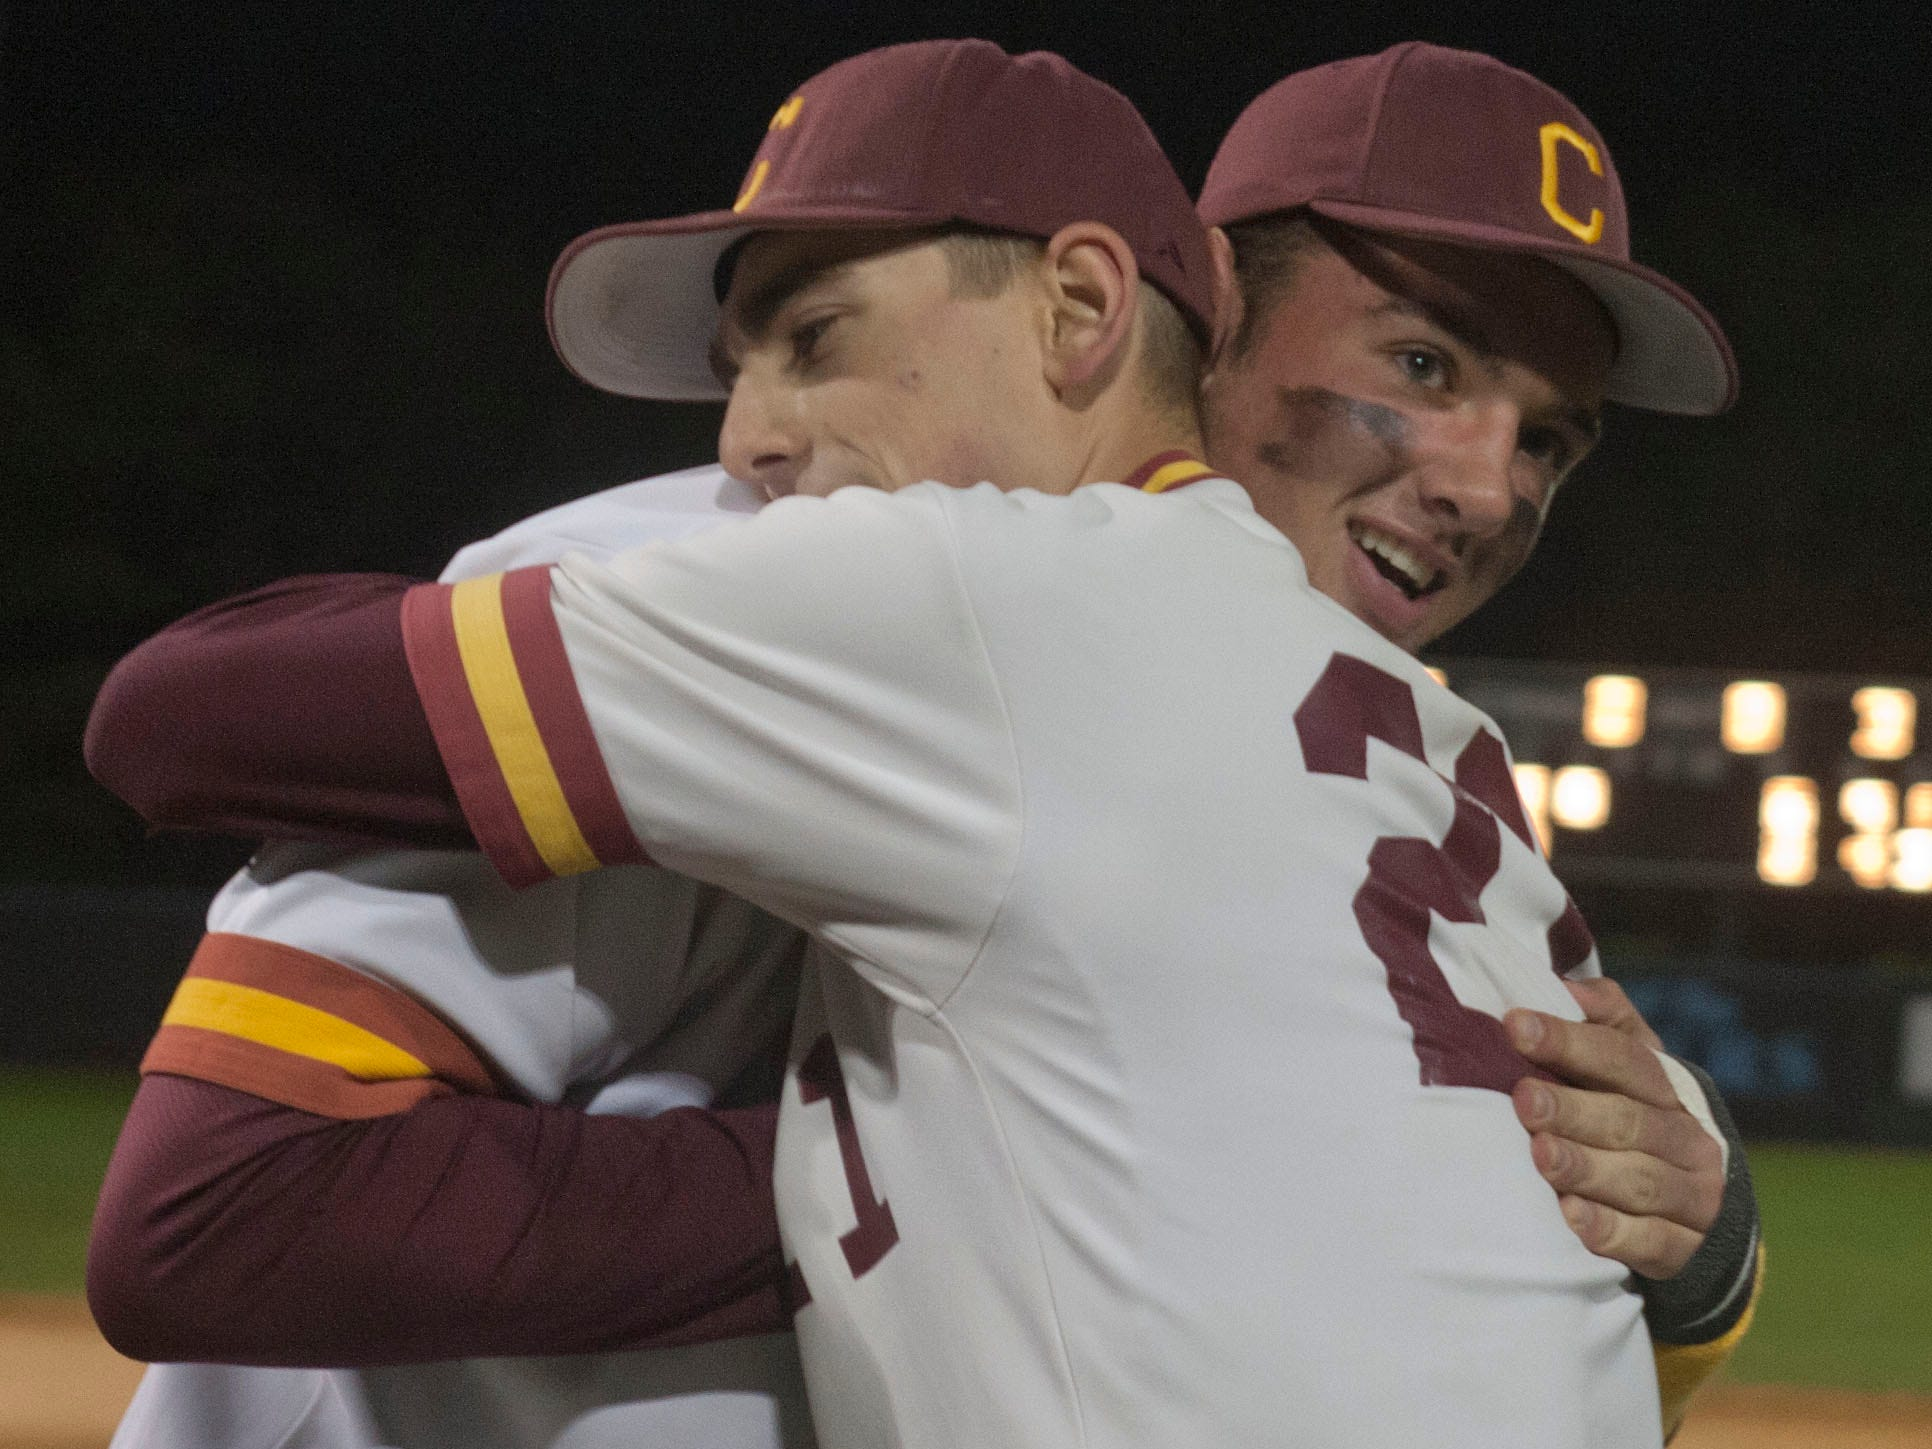 Central Regional won the OCT title last year as Anthony Arneth (right), shown by being hugged by former Central standout pitcher Andrew DiPiazza, pitched a shutout in the championship game against Barnegat. Central is the No. 11 seed in this year's OCT.